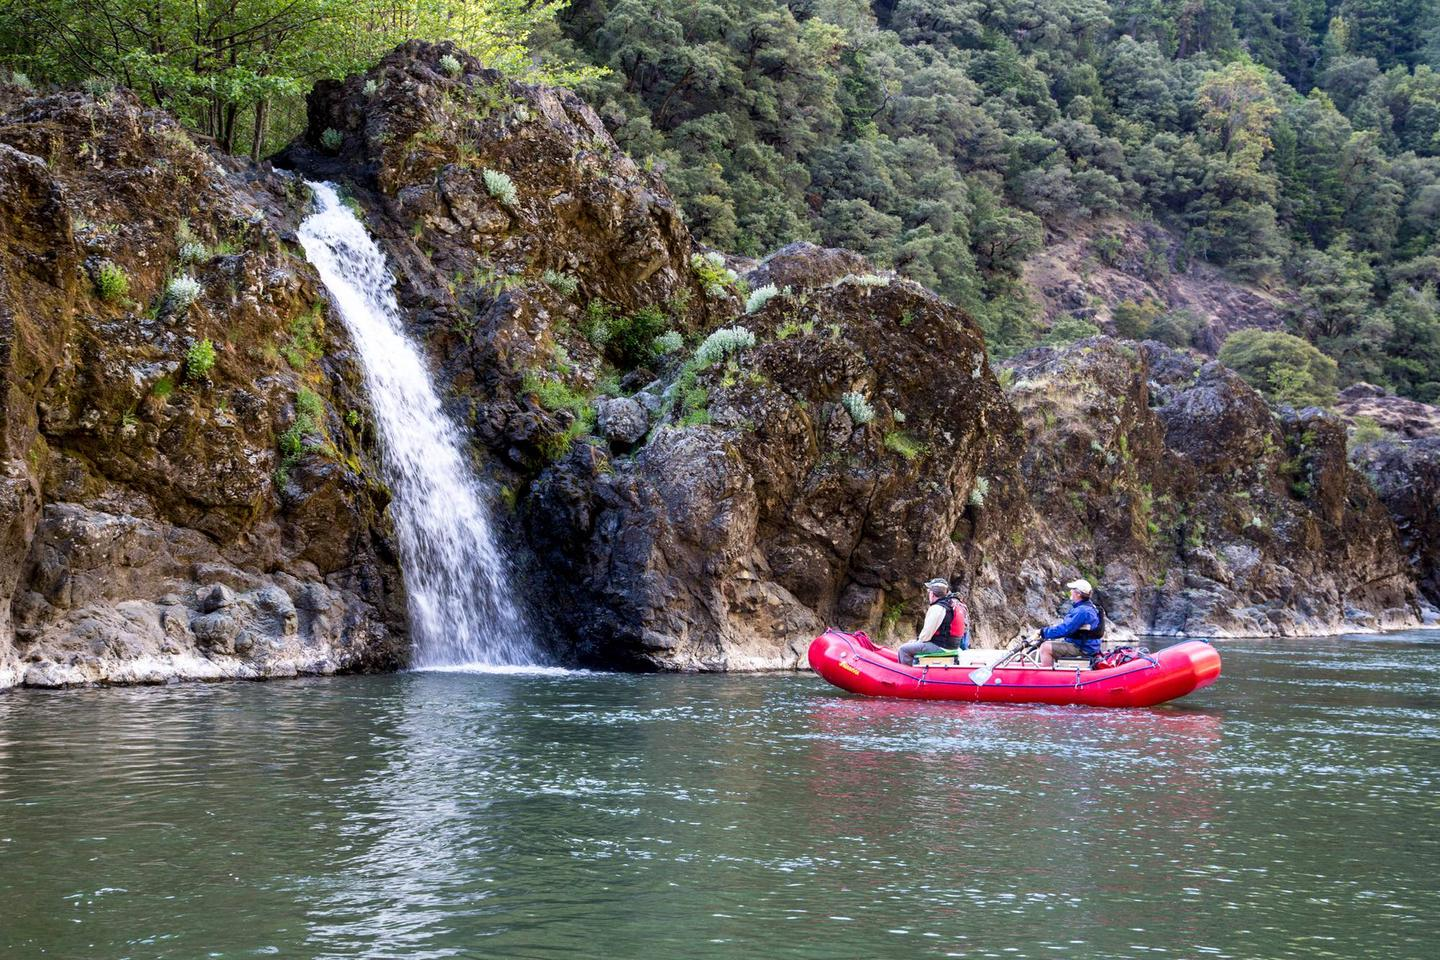 Two boaters in a red raft observe a small waterfall tumbling over mossy rocks into the Rogue River.Small waterfall on the Rogue Wild & Scenic River.